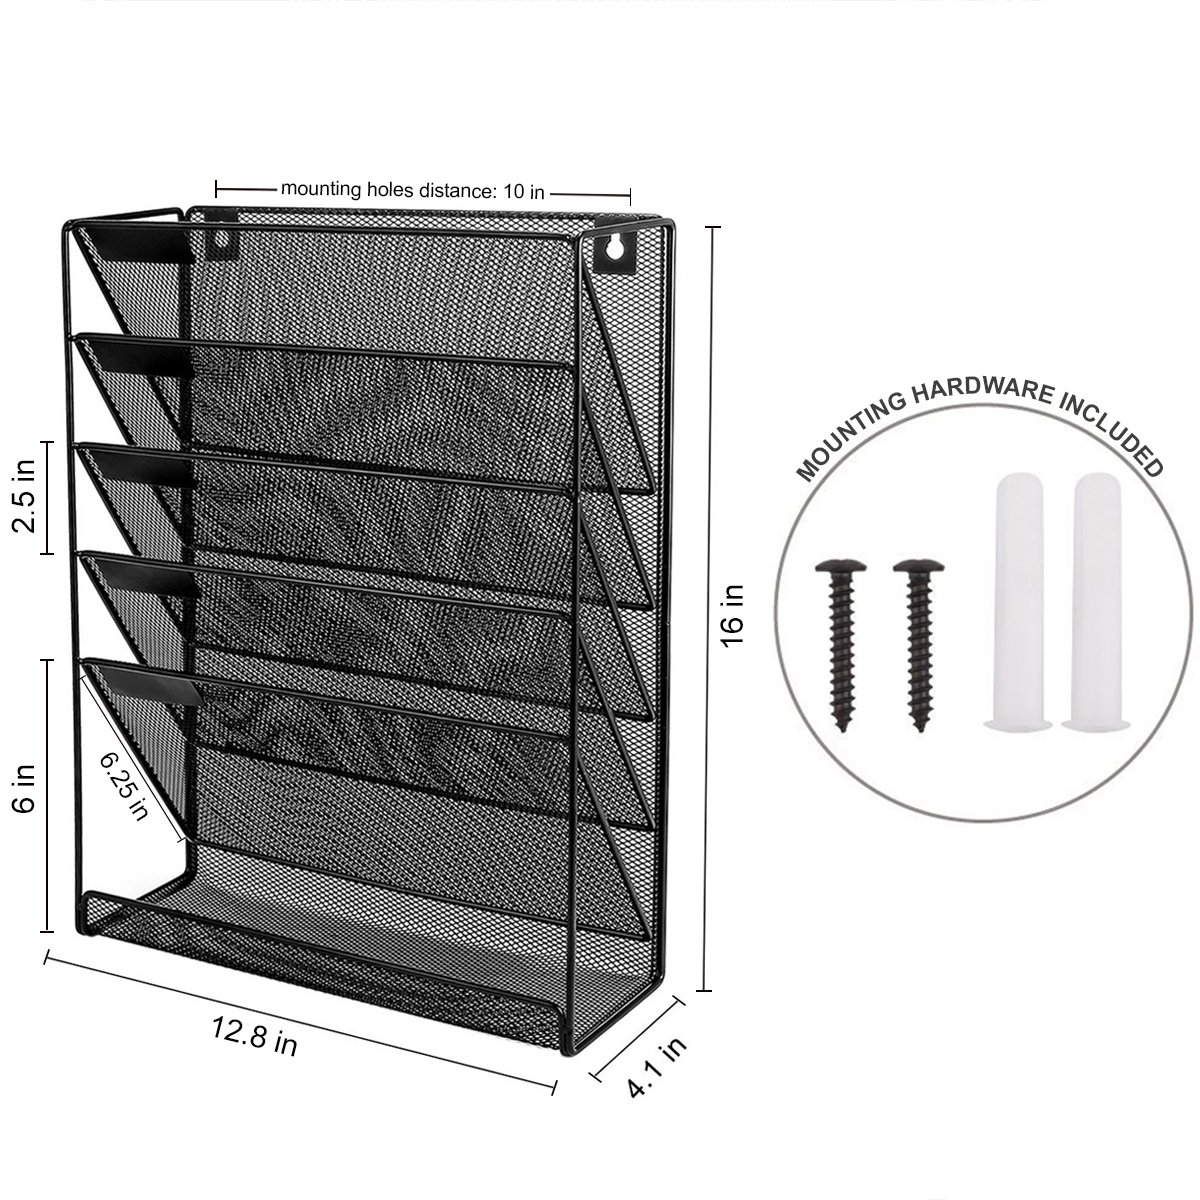 Wall Hanging File Holder Organizer for Office Home, 5-Tier Black Metal- Yuugen Products by Yuugen Products (Image #2)